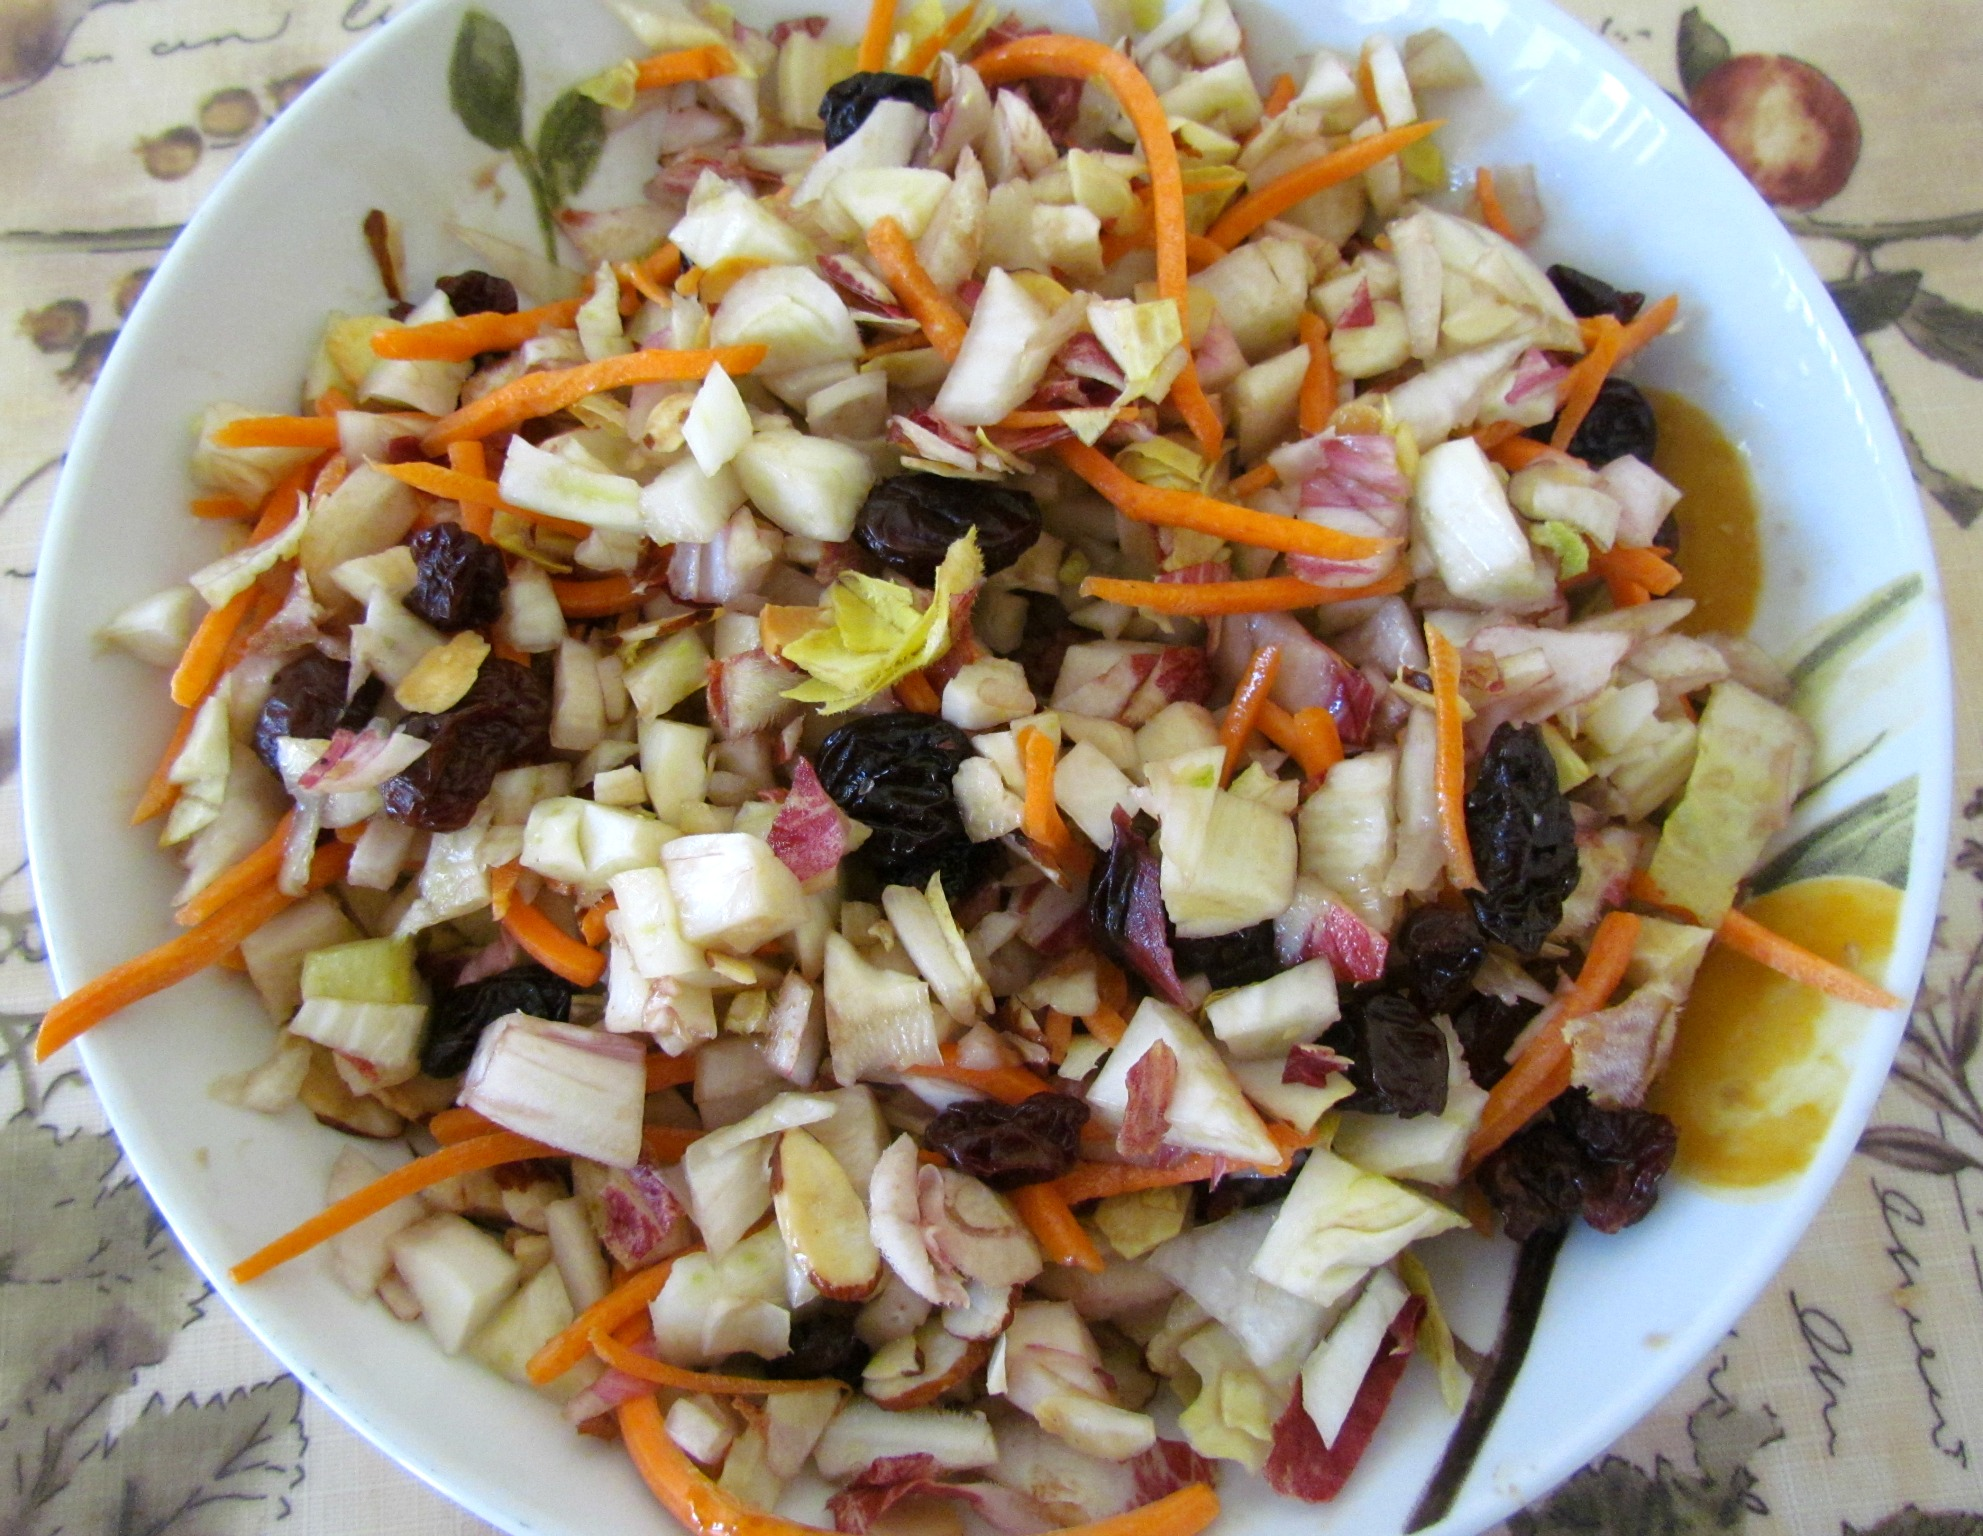 Fennel & Endive Salad with Almonds -n- Cherries